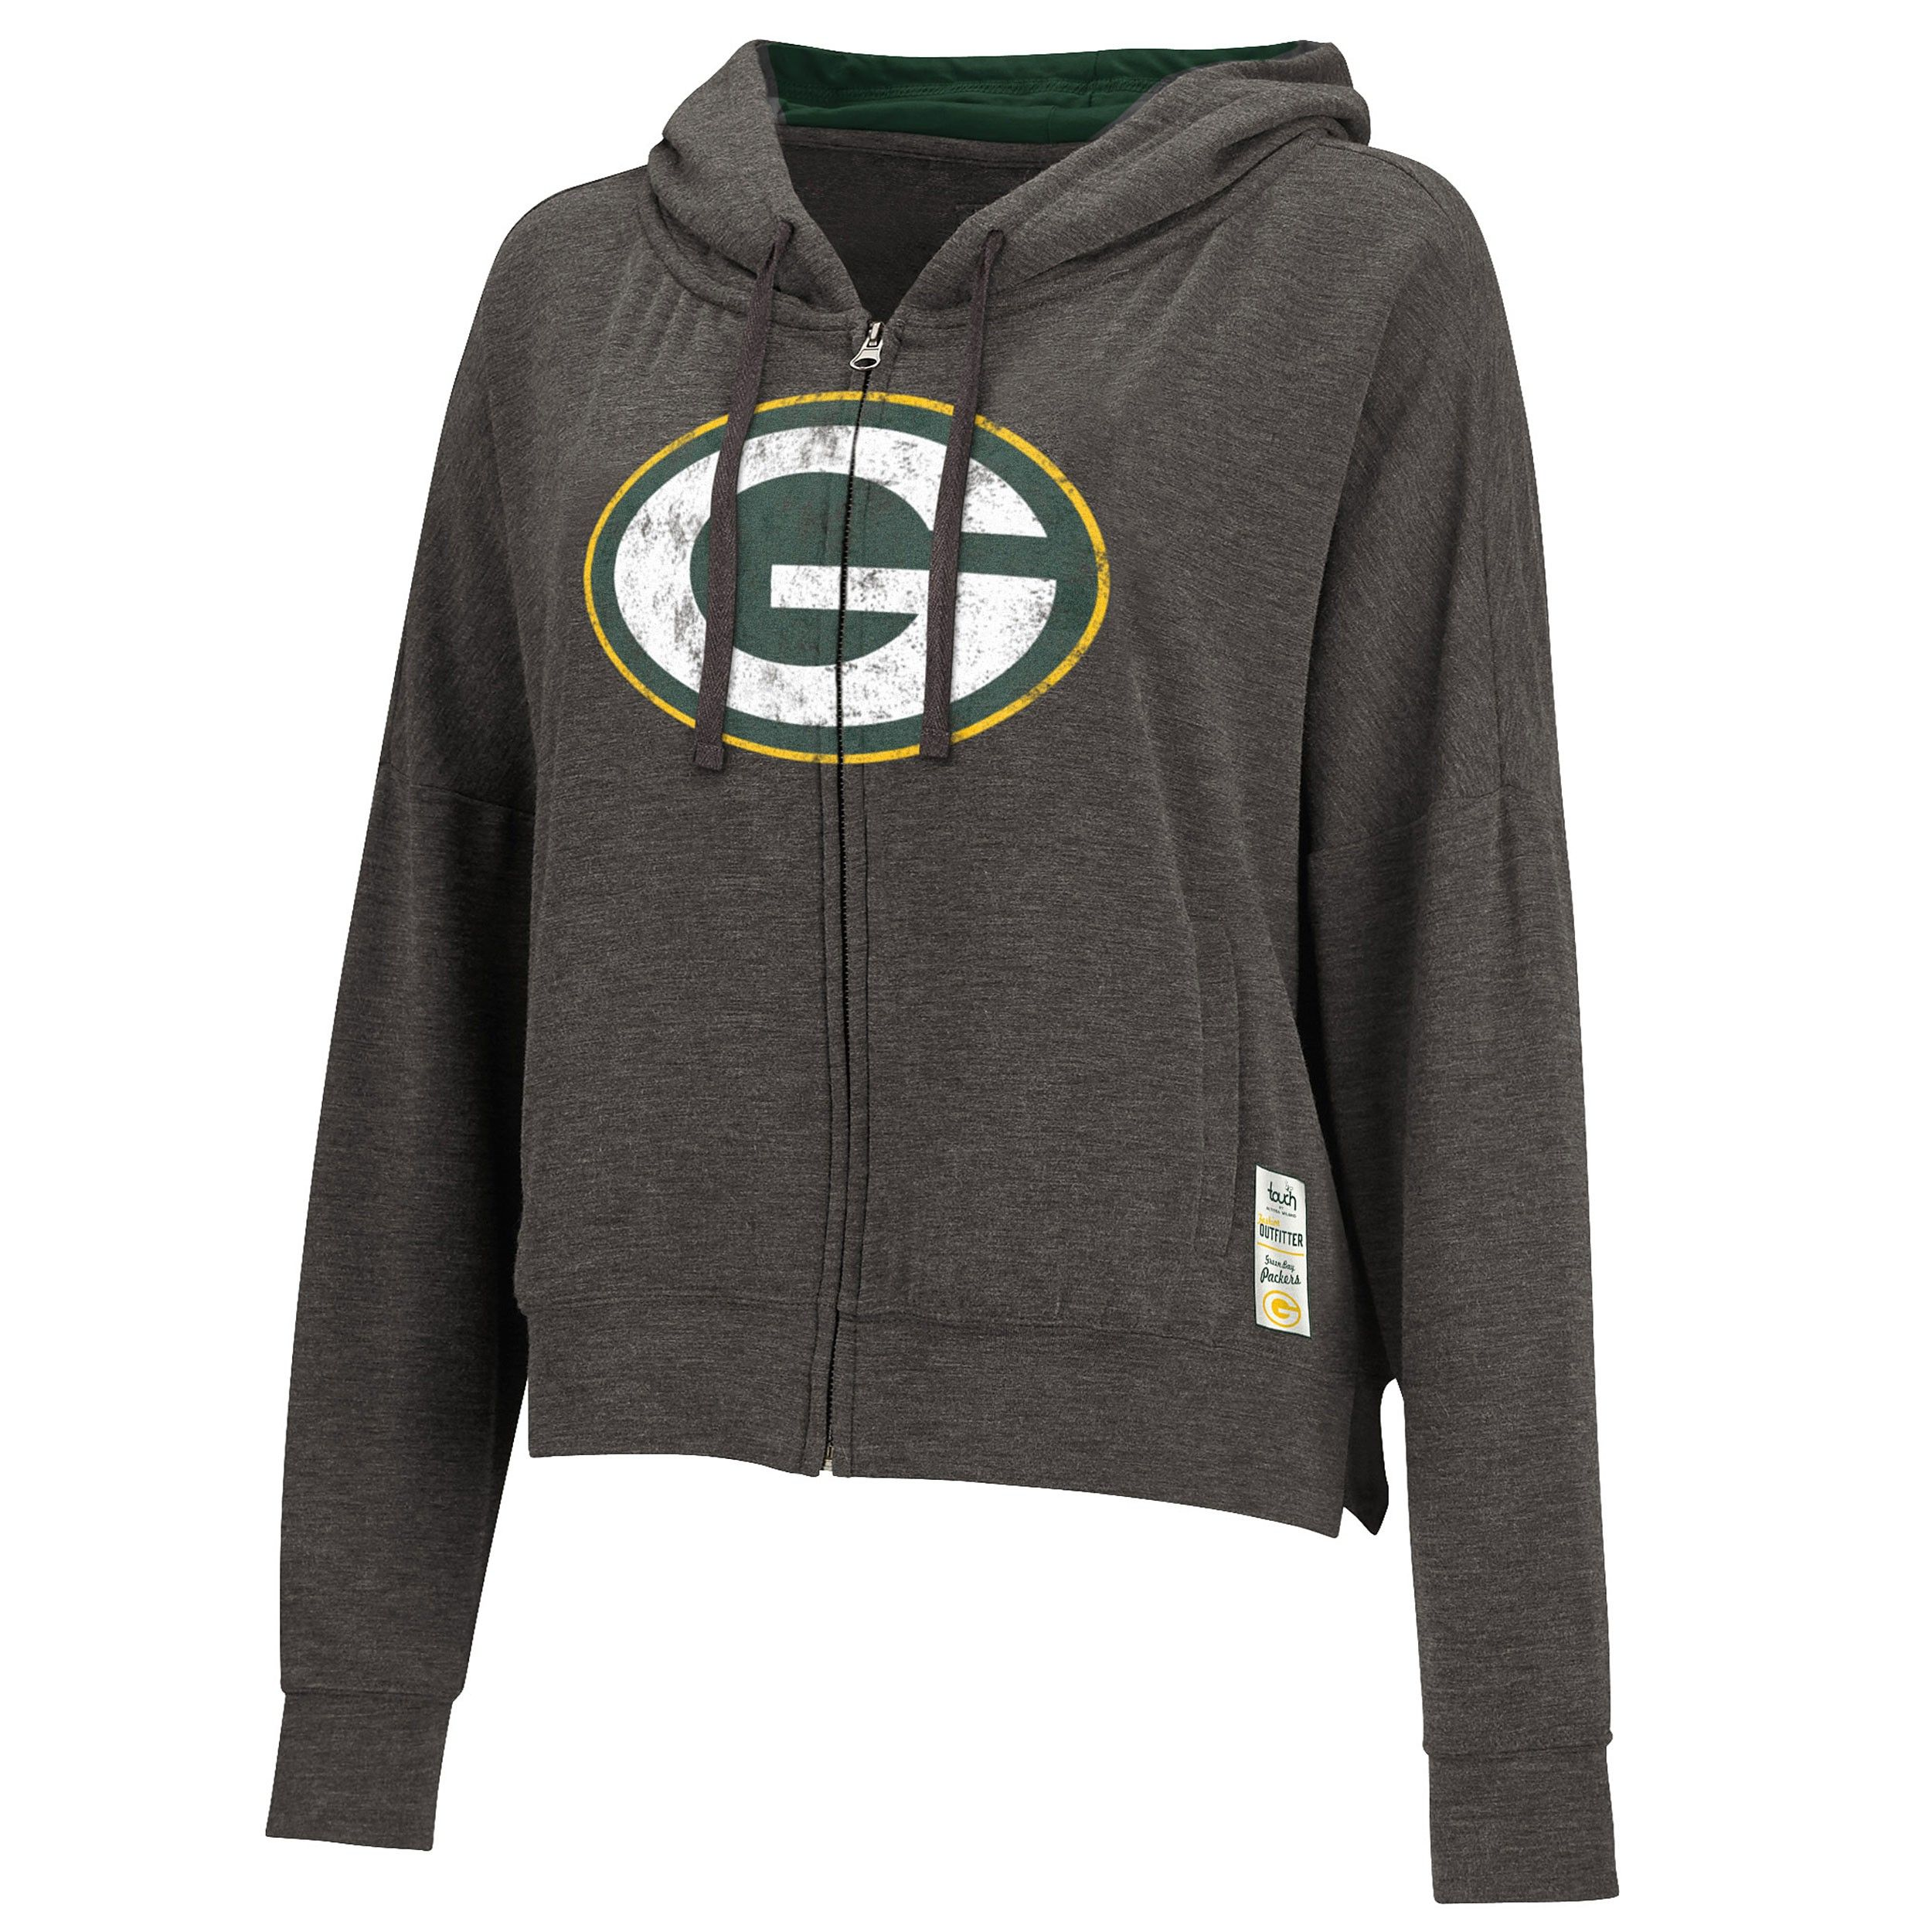 reputable site a3508 e375f Green Bay Packers Women's Plus Size Hitter Hoodie | Go Pack ...